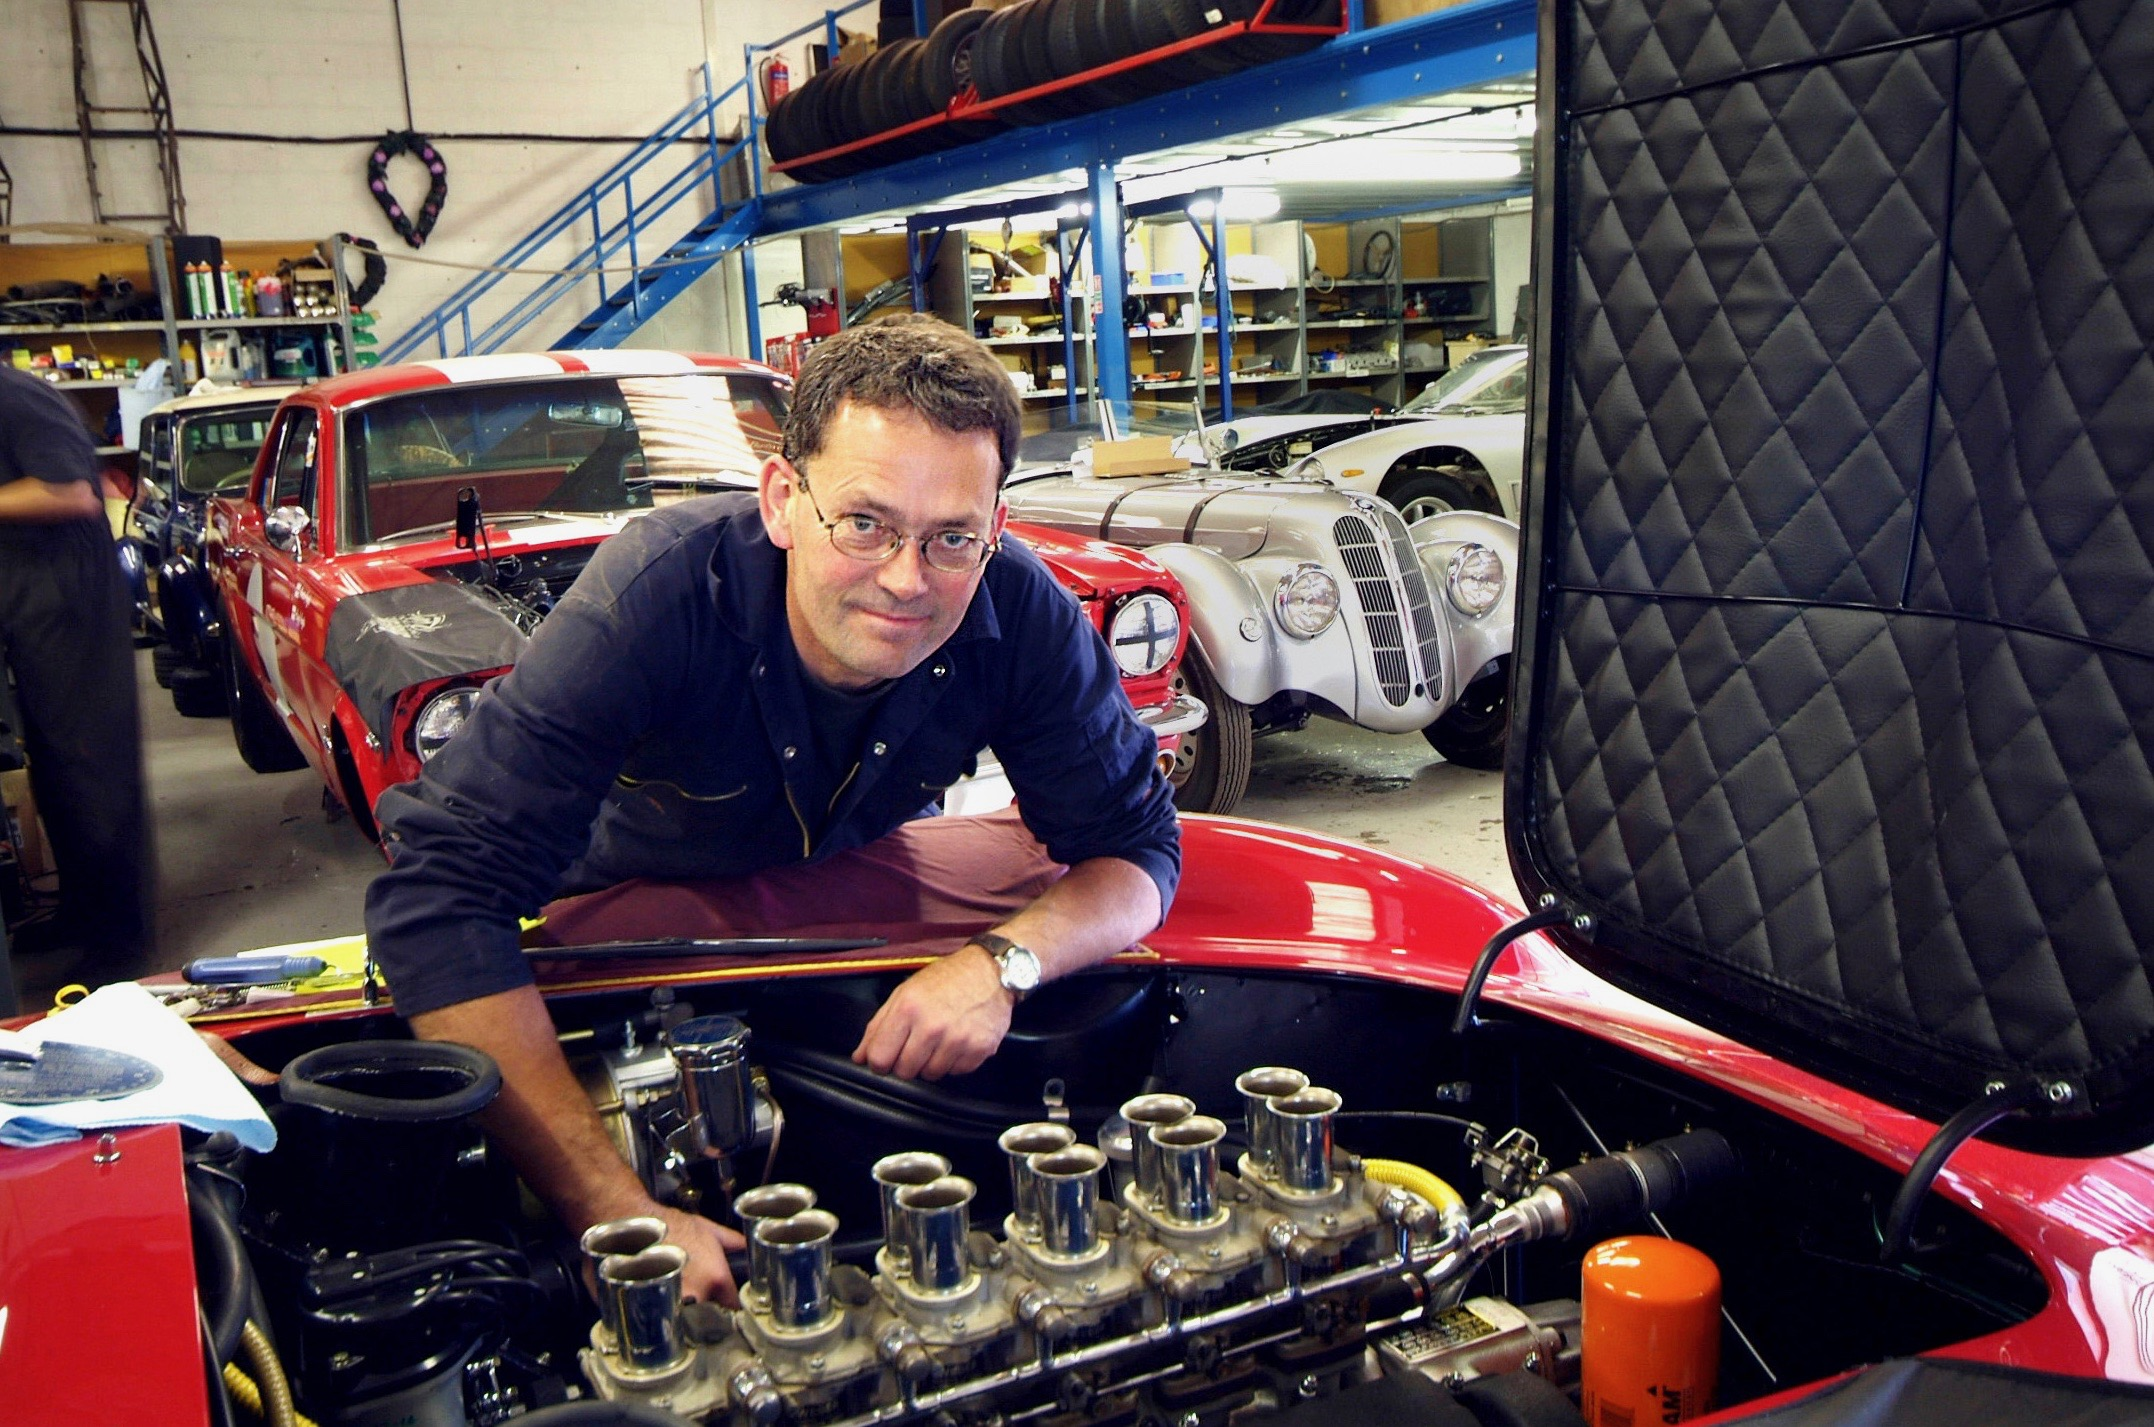 Martin Greaves of     CLASSIC PERFORMANCE ENGINNERING  . Working his magic on the Ferrari 250 GTO 3.0 litre V12 engine.